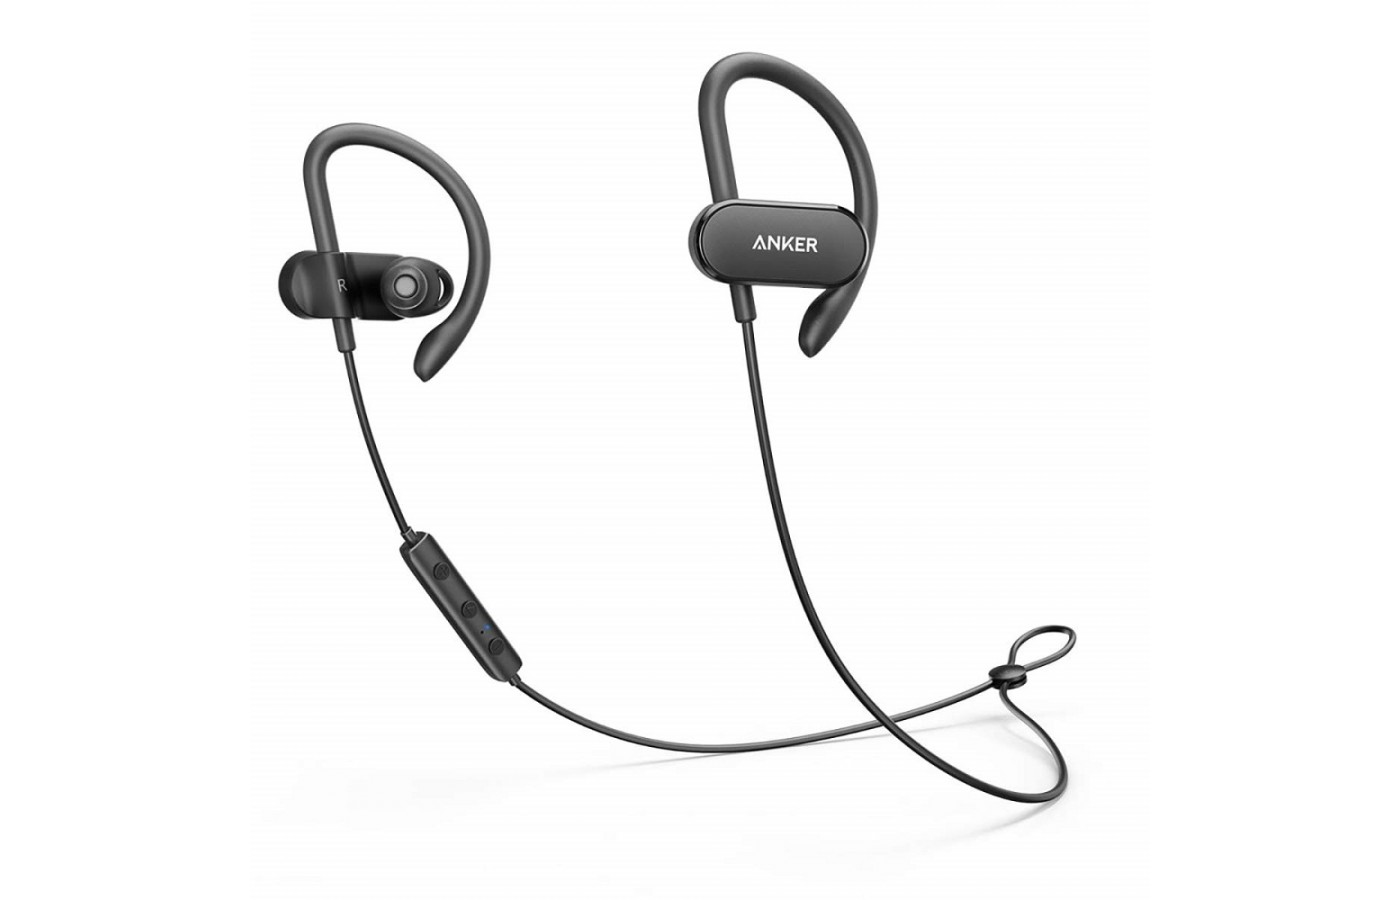 The Anker SoundBuds Curve offers a flexible arm for a more secure fit.